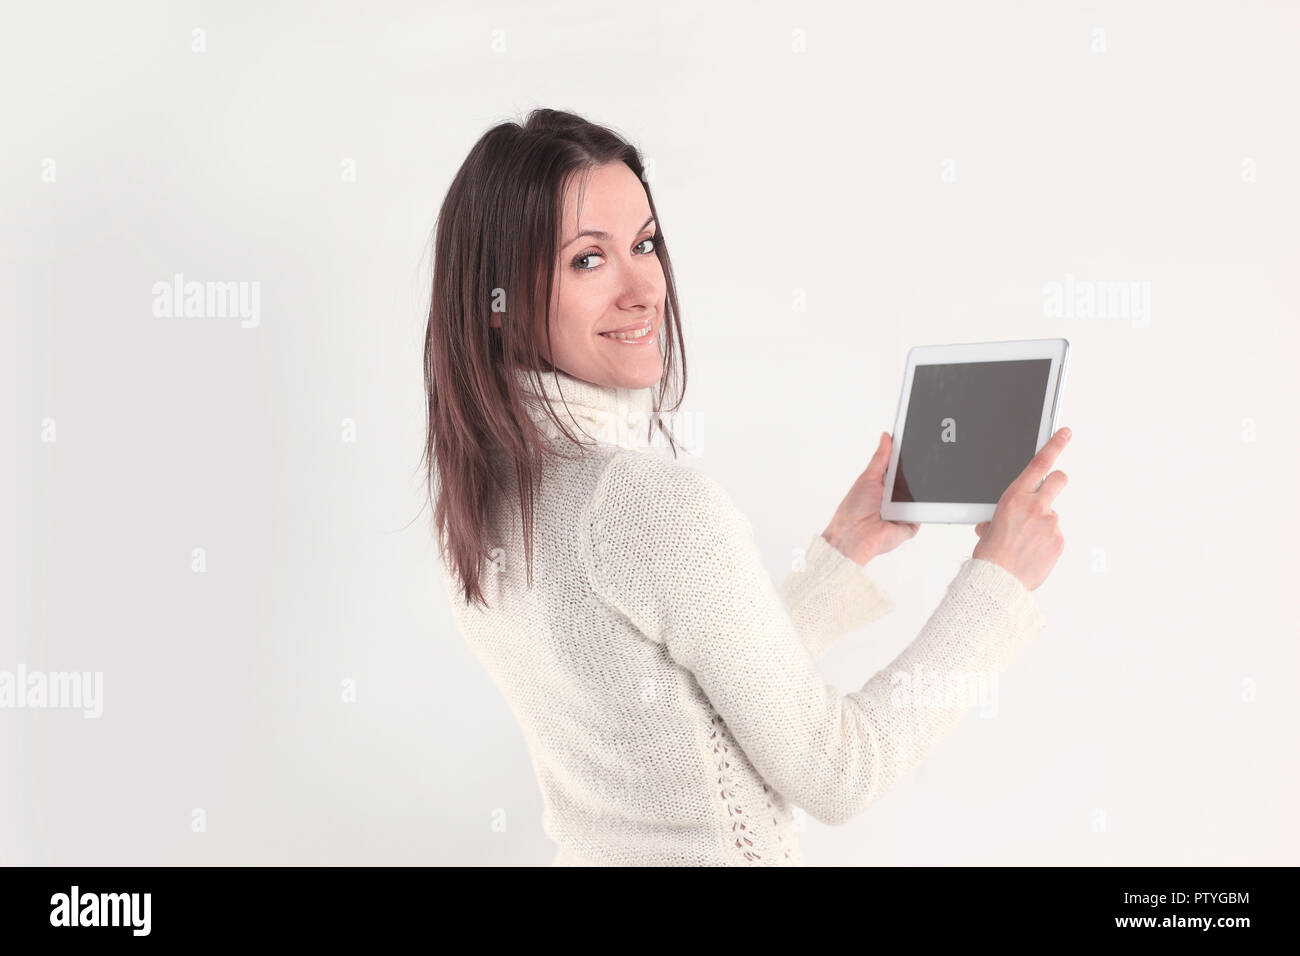 rear view. creative woman with digital tablet looking at camera.photo with copy space - Stock Image